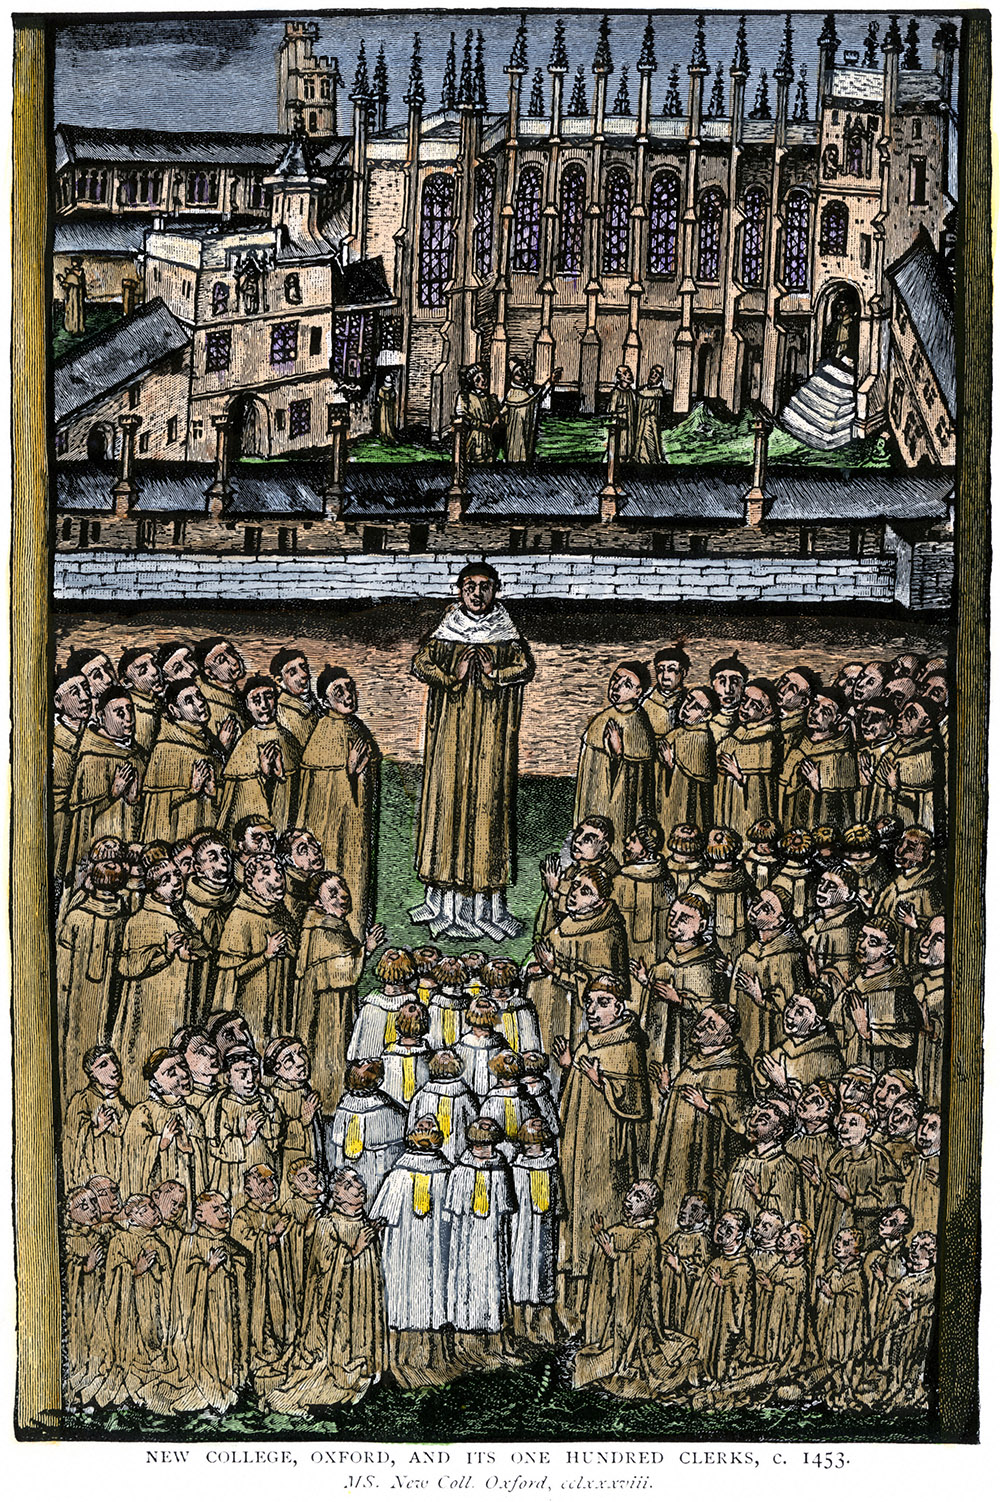 New College Oxford University and its one hundred clerics c.1453.